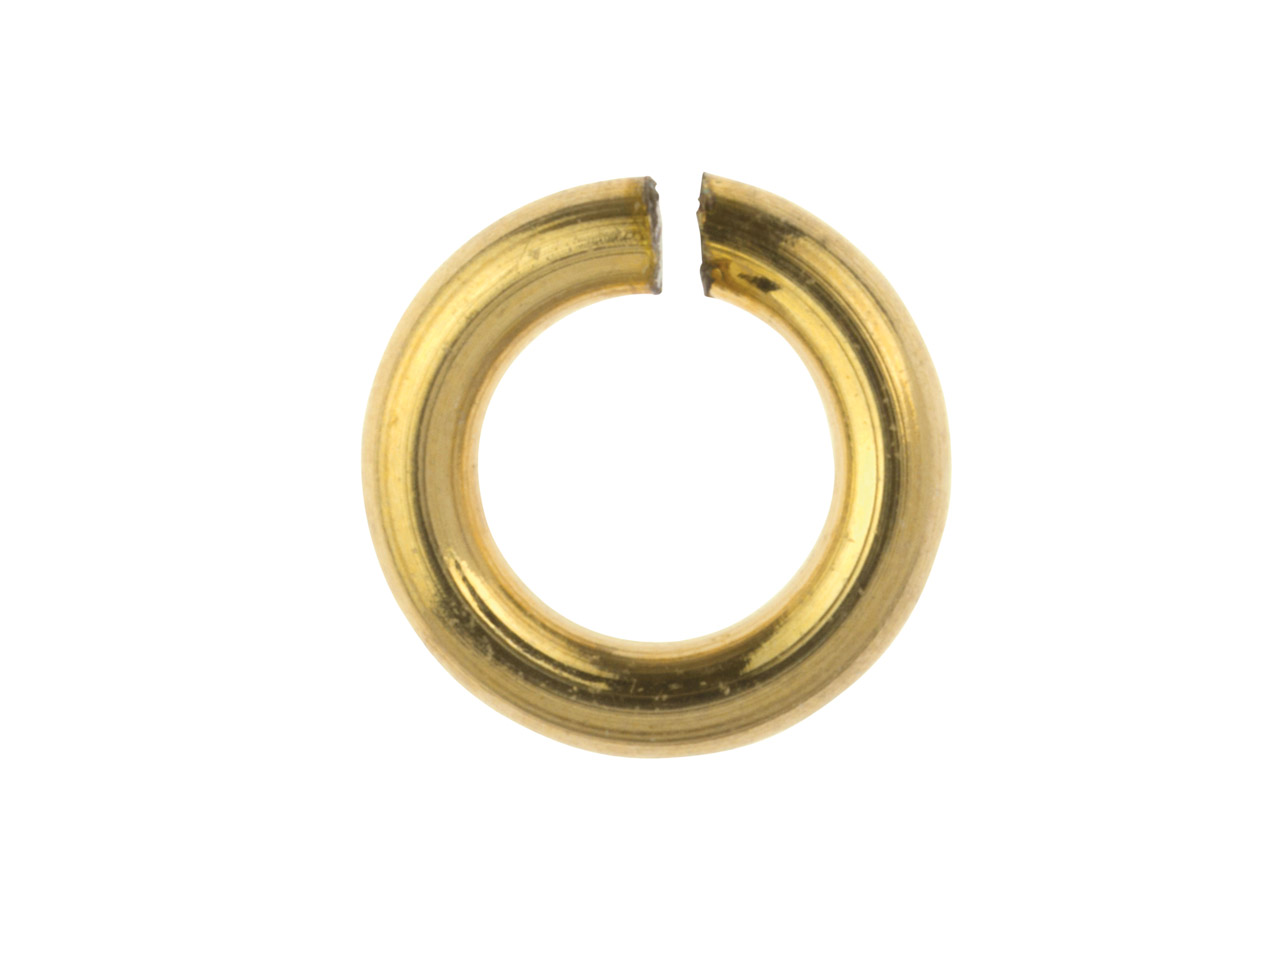 14ct Gold Filled Open Jump Ring 3mm Pack of 20